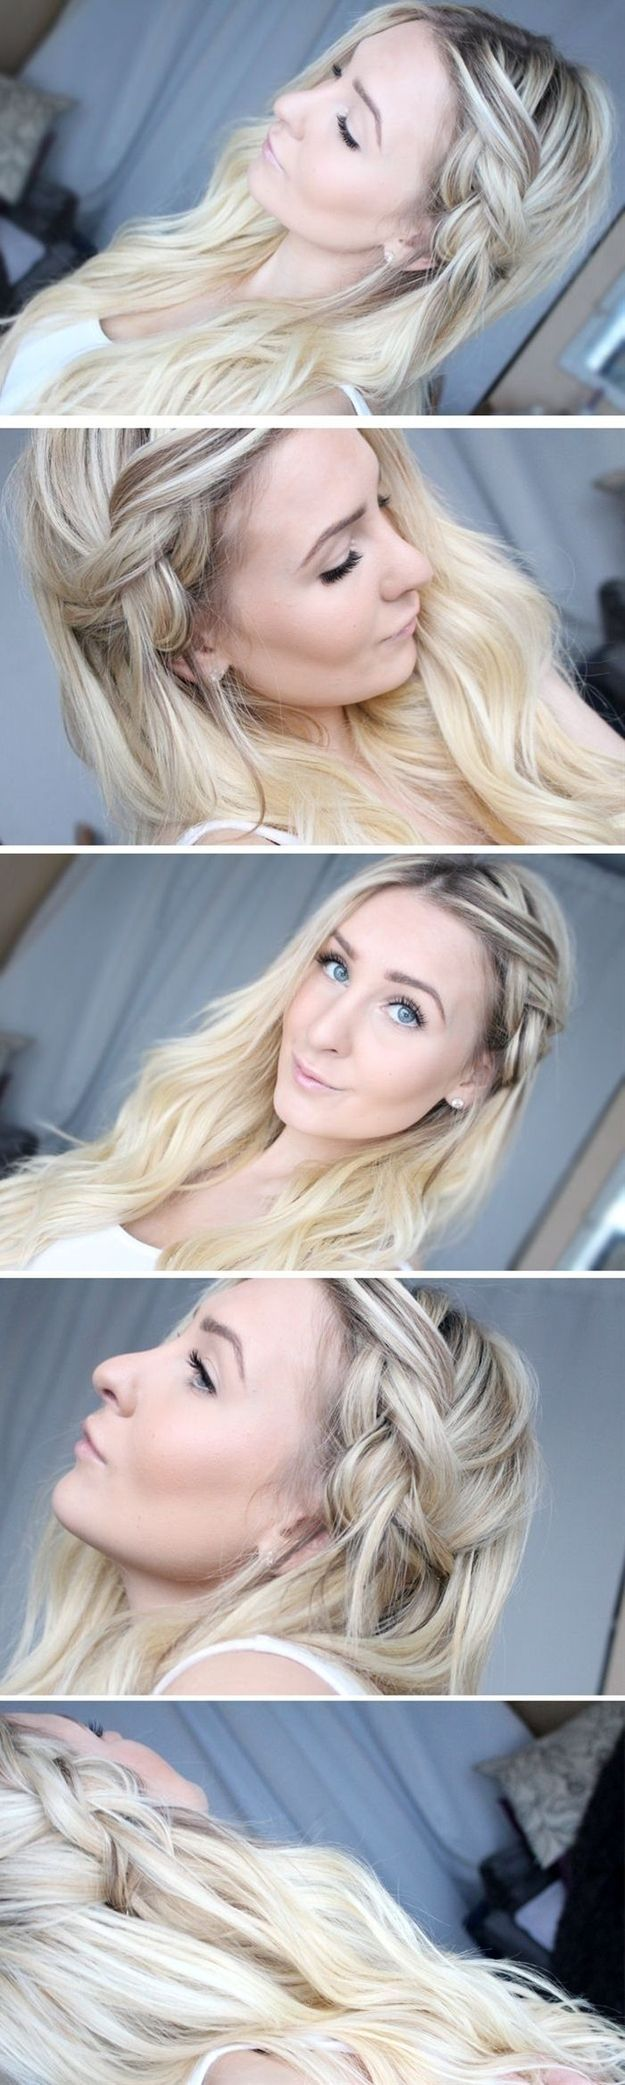 This half-done braid will stay even better in unwashed hair. |   Hairstyling Hacks